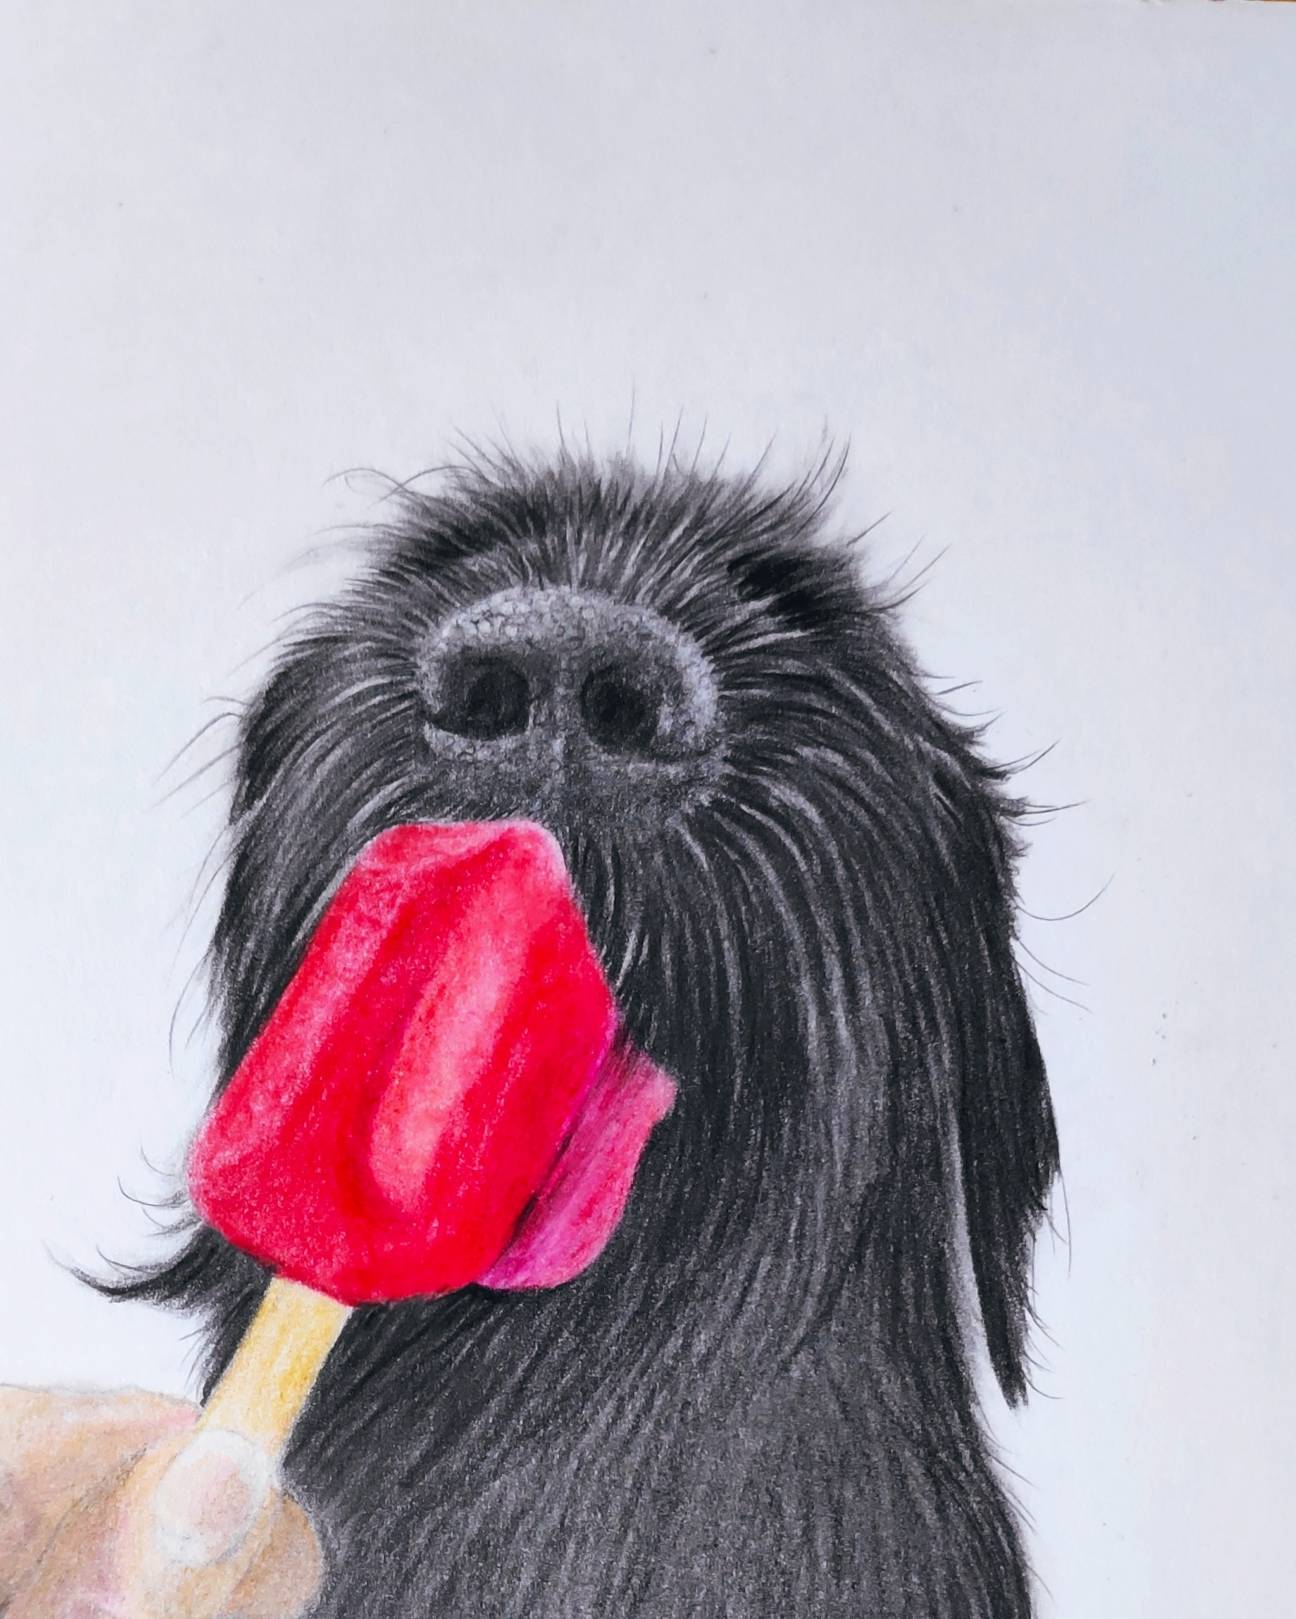 coloured pencil canine portrait, Hunde Portrait als Bunststiftzeichnung